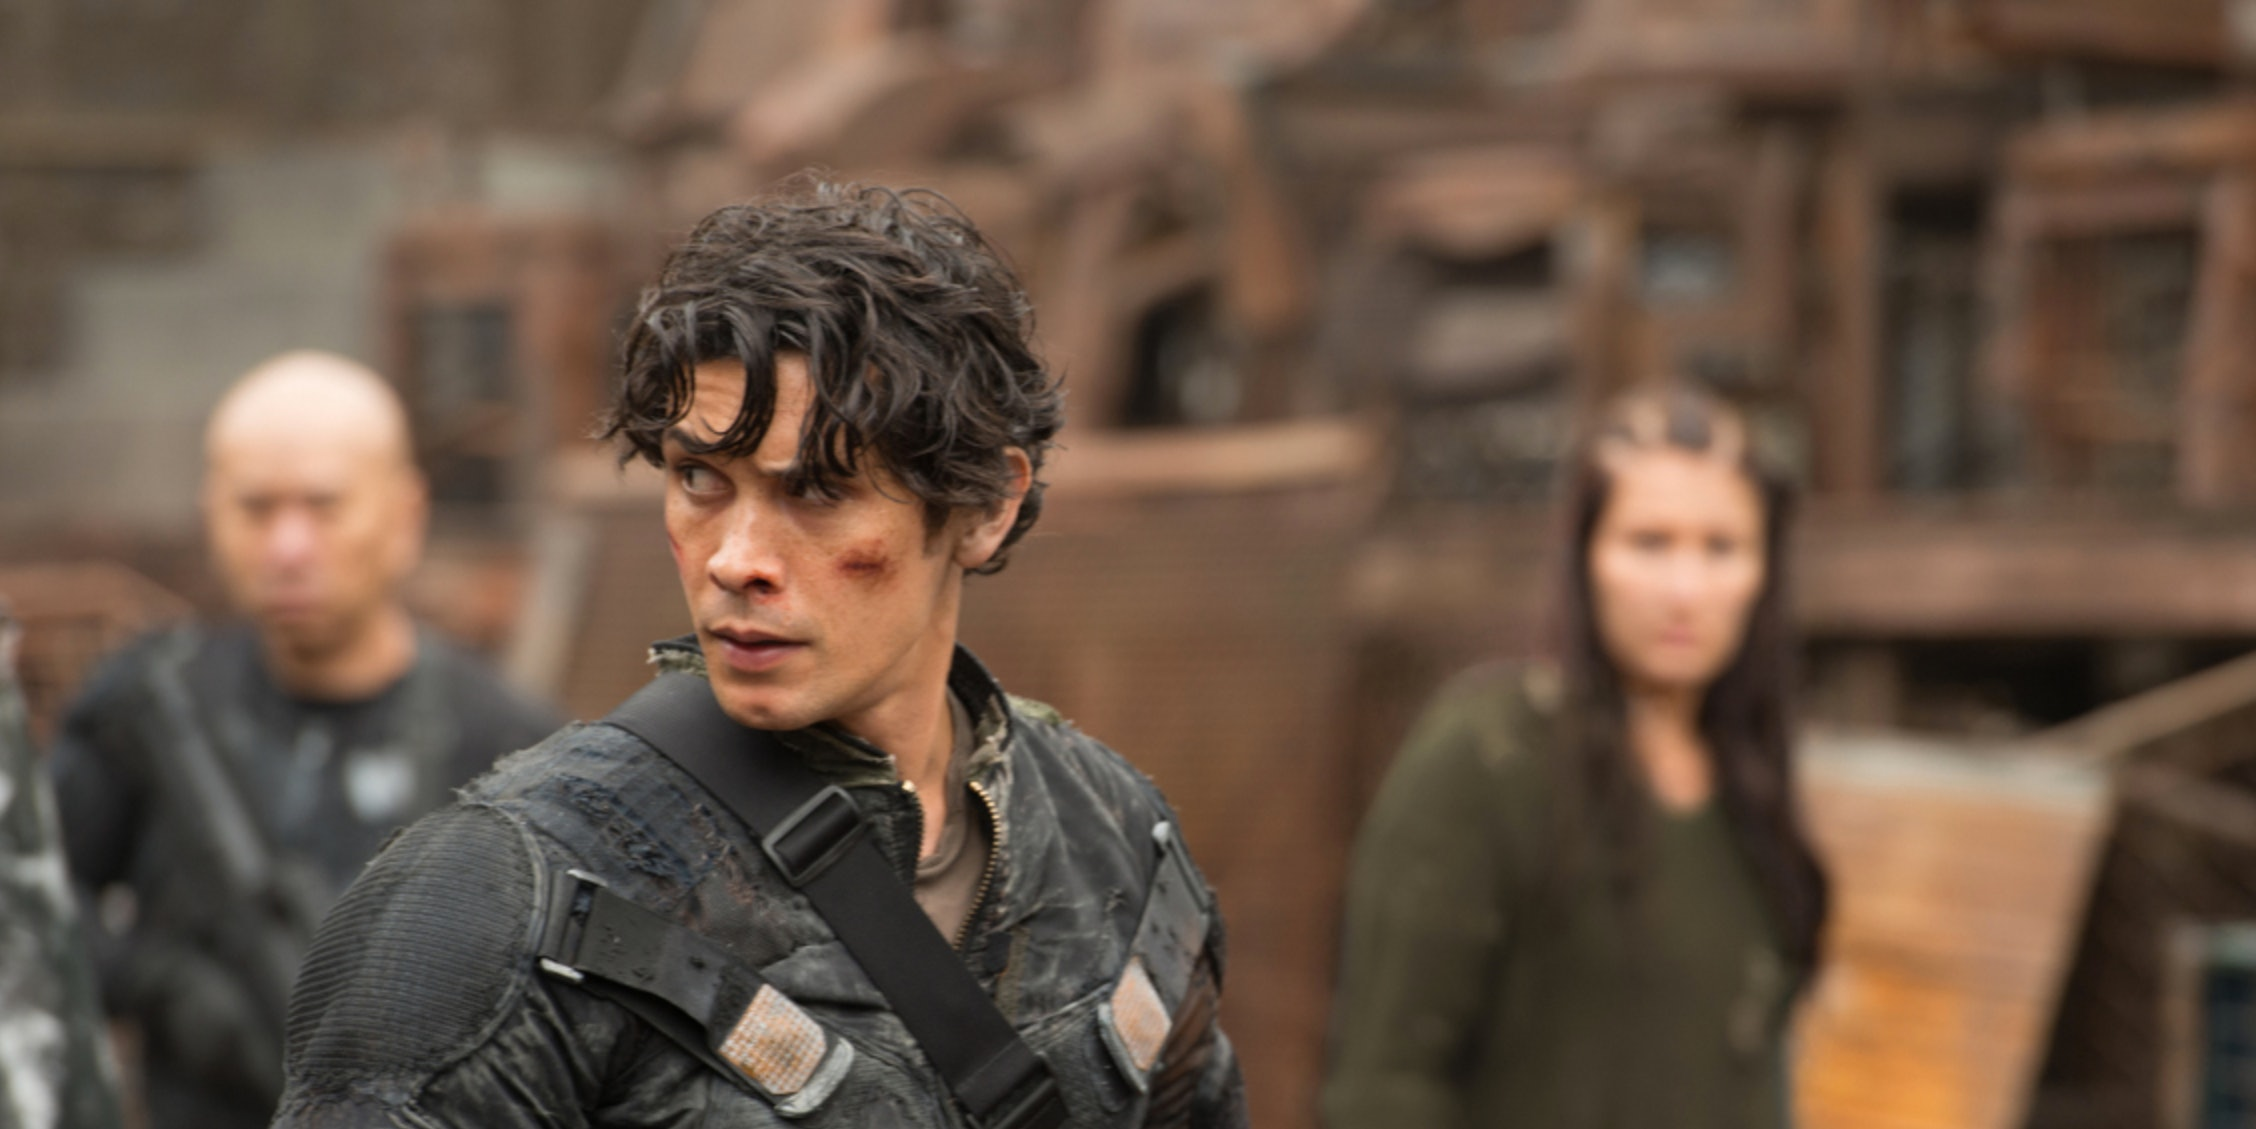 How Bellamy's Scene With Echo Changed 'The 100'